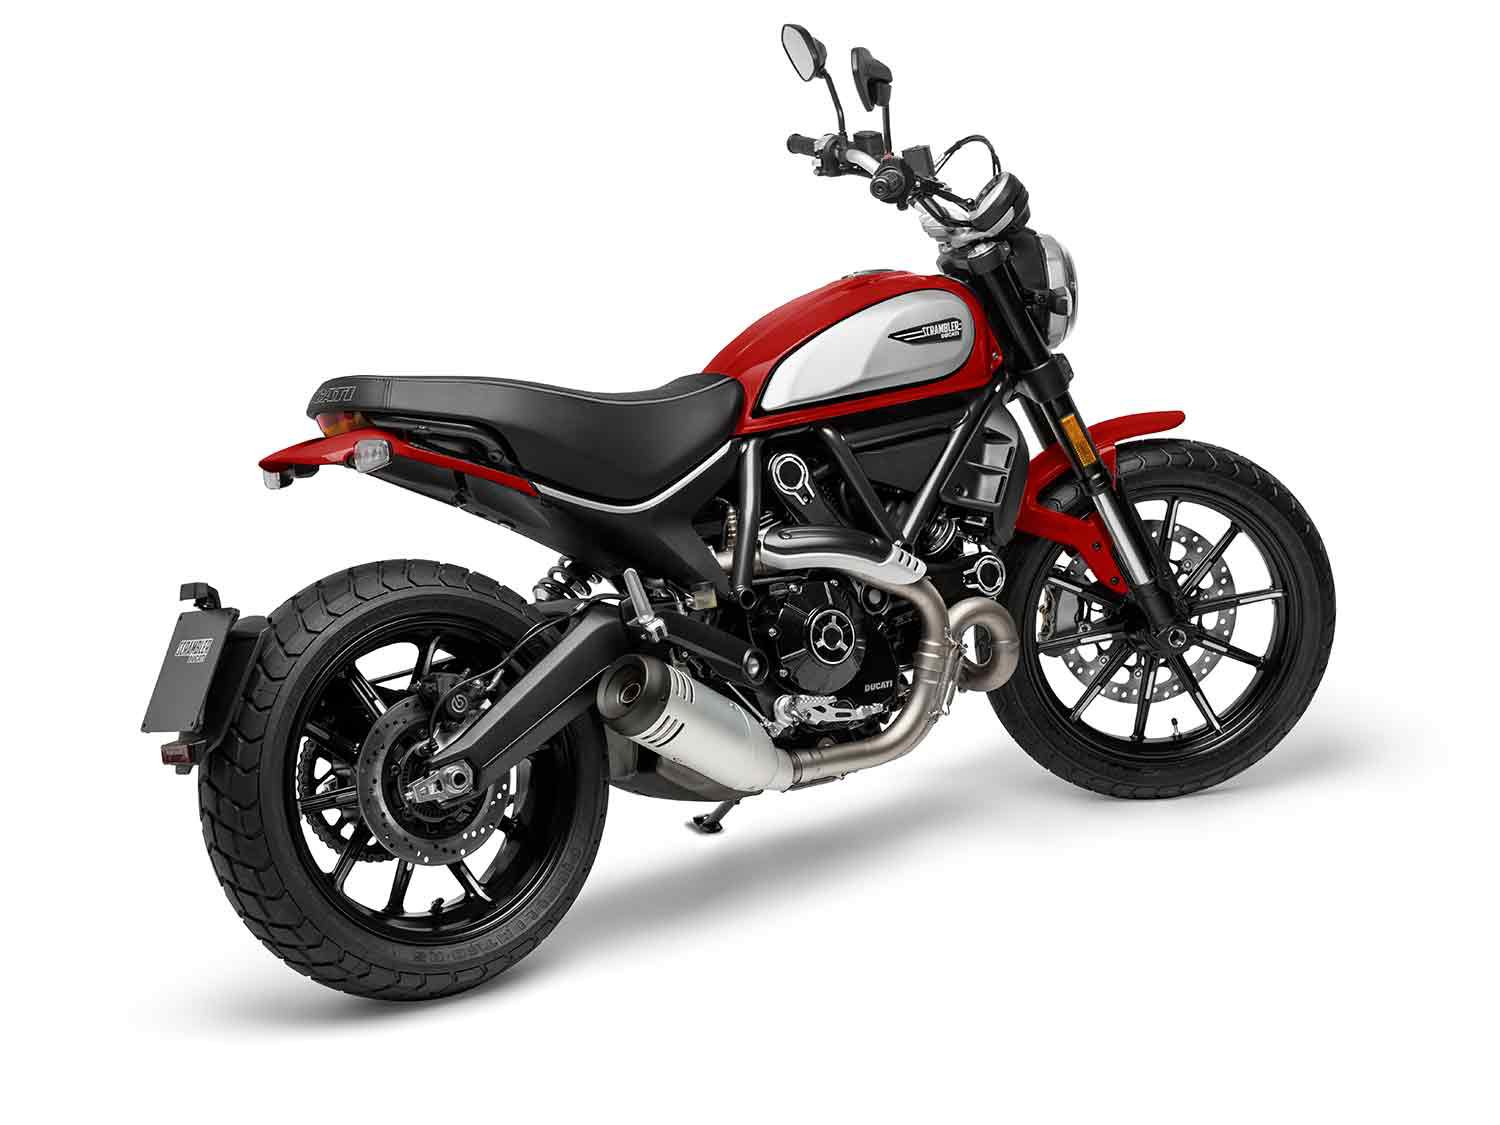 Rep your Ducati Red on with this Scrambler Icon livery in 2021.